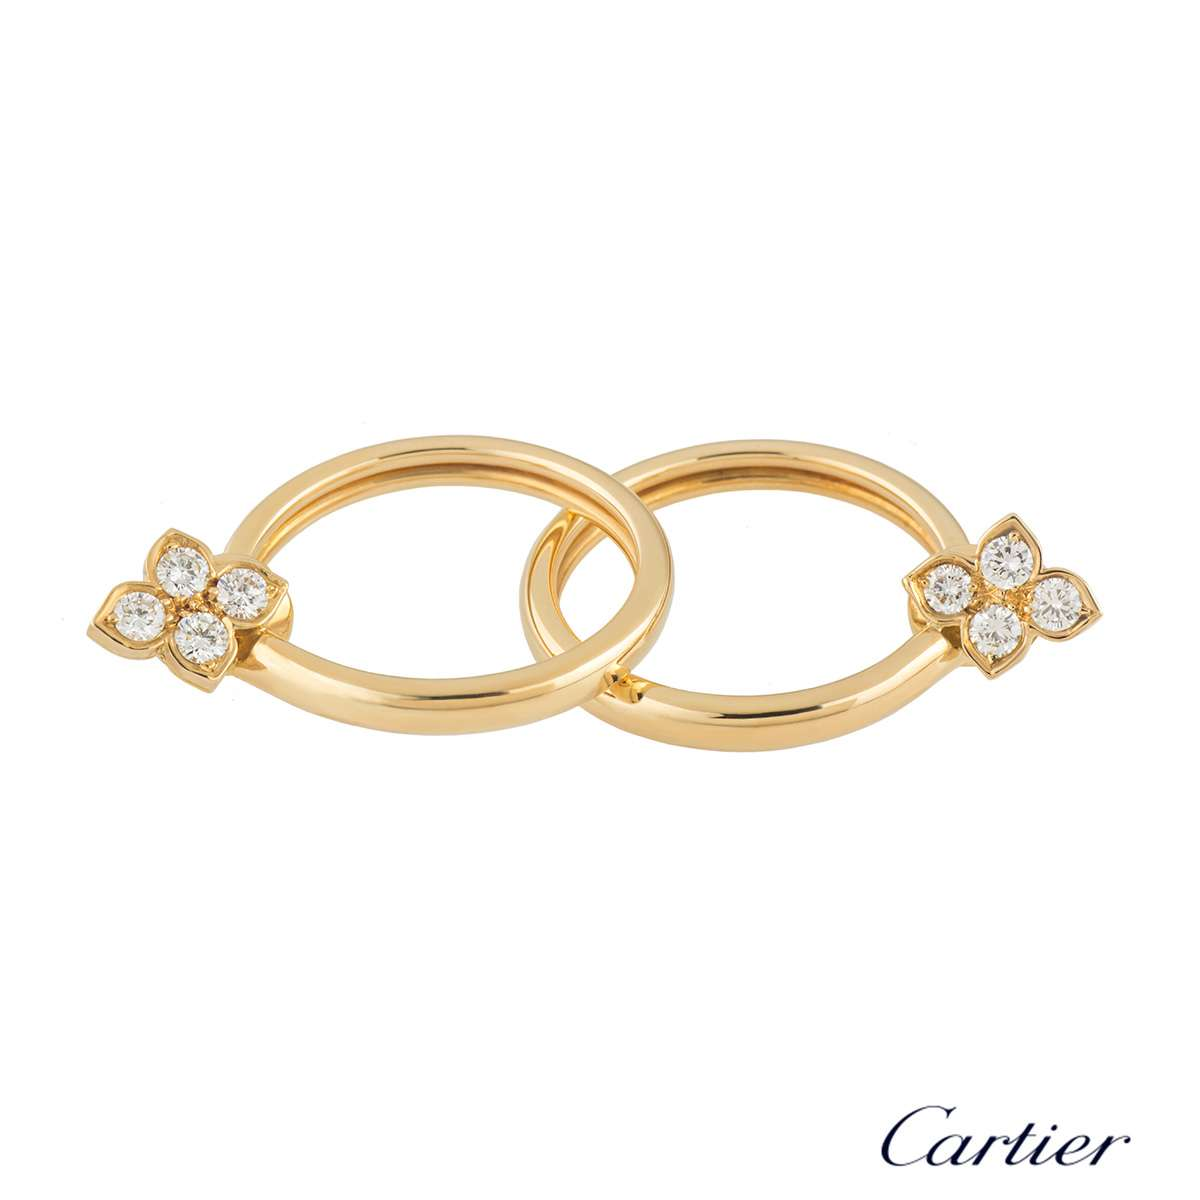 Cartier Yellow Gold Hindu Diamond Earrings